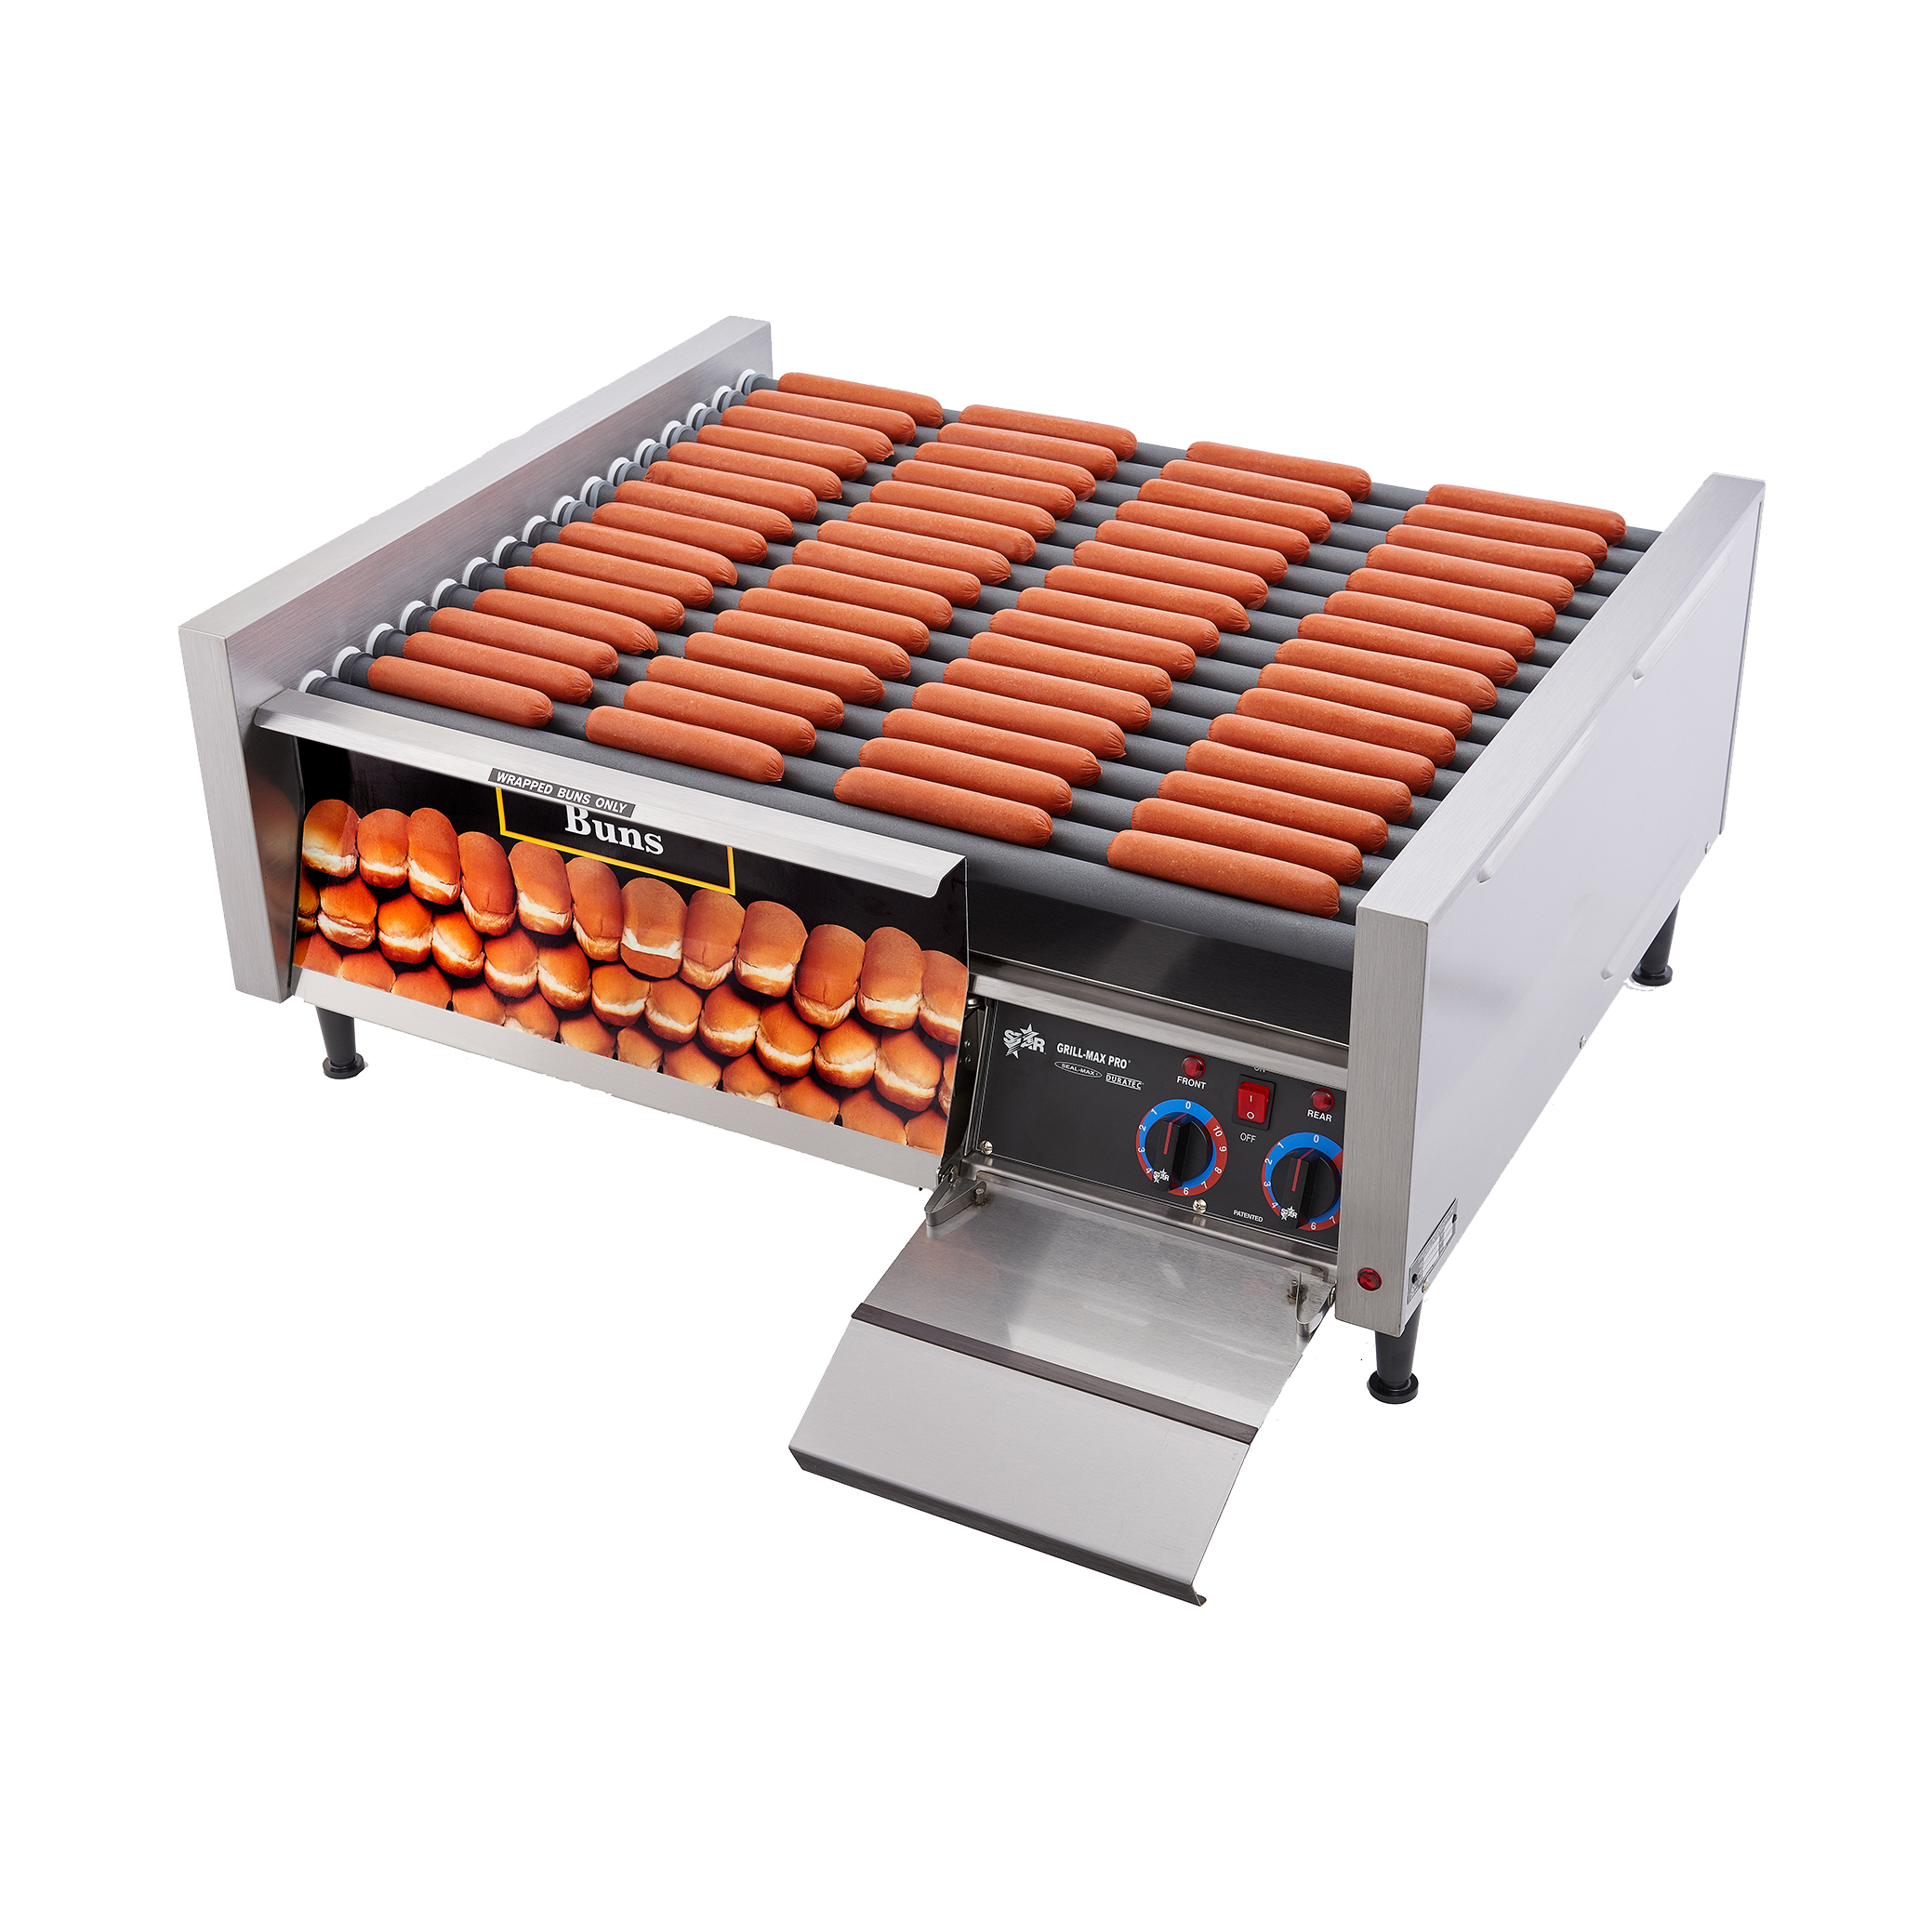 Star 75STBD hot dog grill